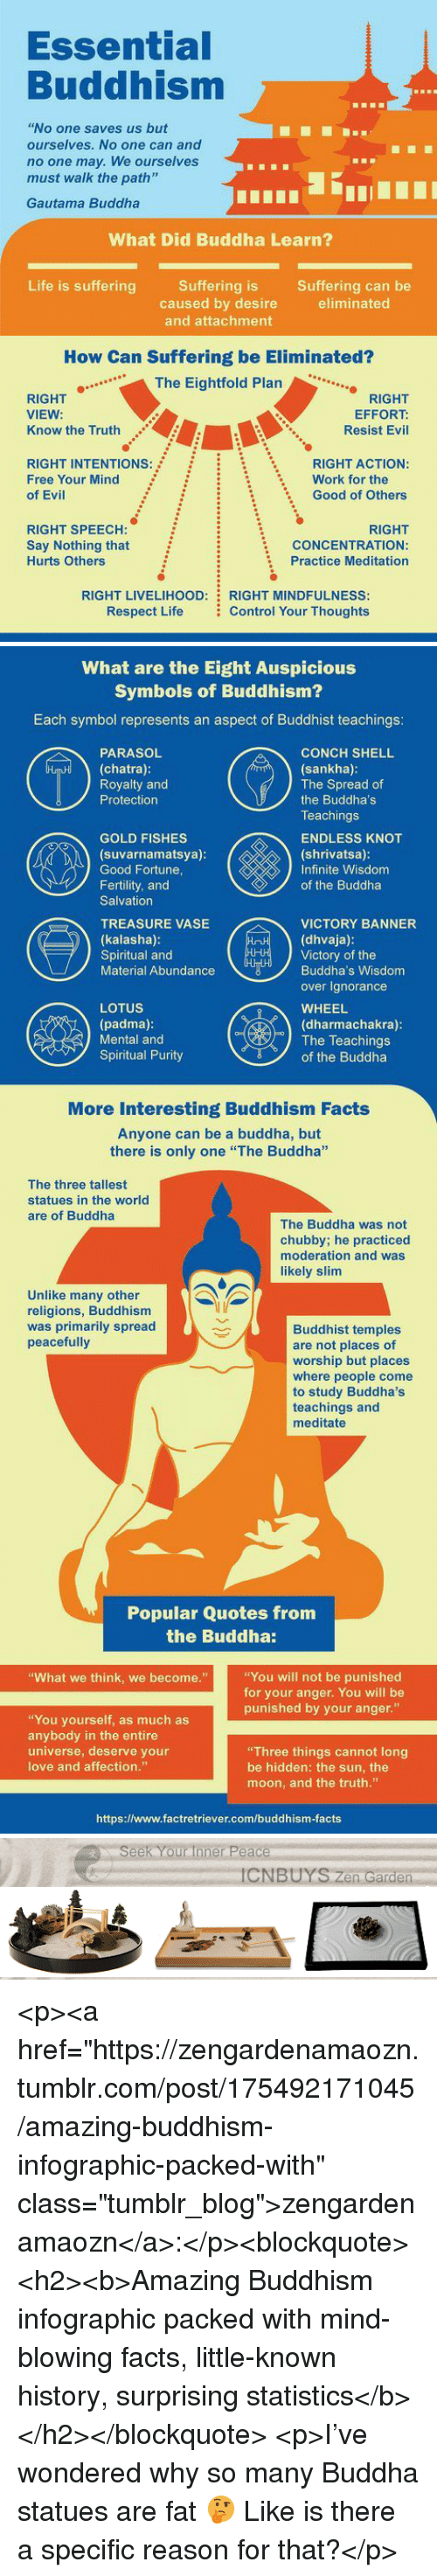 "Facts, Life, and Love: Essential  Buddhism  ""No one saves us but  ourselves. No one can and  no one may. We ourselves  must walk the path'""  Gautama Buddha  What Did Buddha Learn?  Life is sufferingSuffering is  Suffering can be  eliminated  caused by desire  and attachment  How Can Suffering be Eliminated?  ..The Eightfold Plan  RIGHT  VIEW:  Know the Truth  RIGHT  EFFORT:  Resist Evil  RIGHT INTENTIONs:  Free Your Mind  of Evil  RIGHT ACTION:  Good of Others  Work for the  :  :  \  RIGHT SPEECH:  Say Nothing that  Hurts Others  RIGHT  CONCENTRATION:  Practice Meditation  RIGHT LIVELIHOOD:  Respect Life  RIGHT MINDFULNESS  Control Your Thoughts   What are the Eight Auspicious  Symbols of Buddhism?  Each symbol represents an aspect of Buddhist teachings:  CONCH SHELL  (sankha)  The Spread of  the Buddha's  Teachings  ENDLESS KNOT  (shrivatsa):  Infinite Wisdom  of the Buddha  PARASOL  (chatra):  Royalty and  Protection  GOLD FISHES  (suvarnamatsya)  Good Fortune,  Fertility, and  Salvation  TREASURE VASE  (kalasha)  Spiritual and  Material Abundance  VICTORY BANNER  (dhvaja)  Victory of the  Buddha's Wisdom  over Ignorance  WHEEL  (dharmachakra):  LOTUS  (padma)  Mental and  Spiritual Purity  The Teachings  dr〒ソof the Buddha  More Interesting Buddhism Facts  Anyone can be a buddha, but  there is only one ""The Buddha""  The three tallest  statues in the world  are of Buddha  The Buddha was not  chubby; he practiced  moderation and was  likely slim  Unlike many other  religions, Buddhism  was primarily spread  peacefully  Buddhist temples  are not places of  worship but places  where people come  to study Buddha's  teachings and  meditate  Popular Quotes from  the Buddha:  You will not be punished  for your anger. You will be  punished by your anger.""  What we think, we become.""  ""You yourself, as much as  anybody in the entire  universe, deserve your  love and affection.""  Three things cannot long  be hidden: the sun, the  moon, and the truth.""  https://www.factretriever.com/buddhism-facts   Seek Your Inner Peace  CNBUYS Zen Garden <p><a href=""https://zengardenamaozn.tumblr.com/post/175492171045/amazing-buddhism-infographic-packed-with"" class=""tumblr_blog"">zengardenamaozn</a>:</p><blockquote><h2><b>Amazing Buddhism infographic packed with mind-blowing facts, little-known history, surprising statistics</b></h2></blockquote>  <p>I've wondered why so many Buddha statues are fat 🤔 Like is there a specific reason for that?</p>"